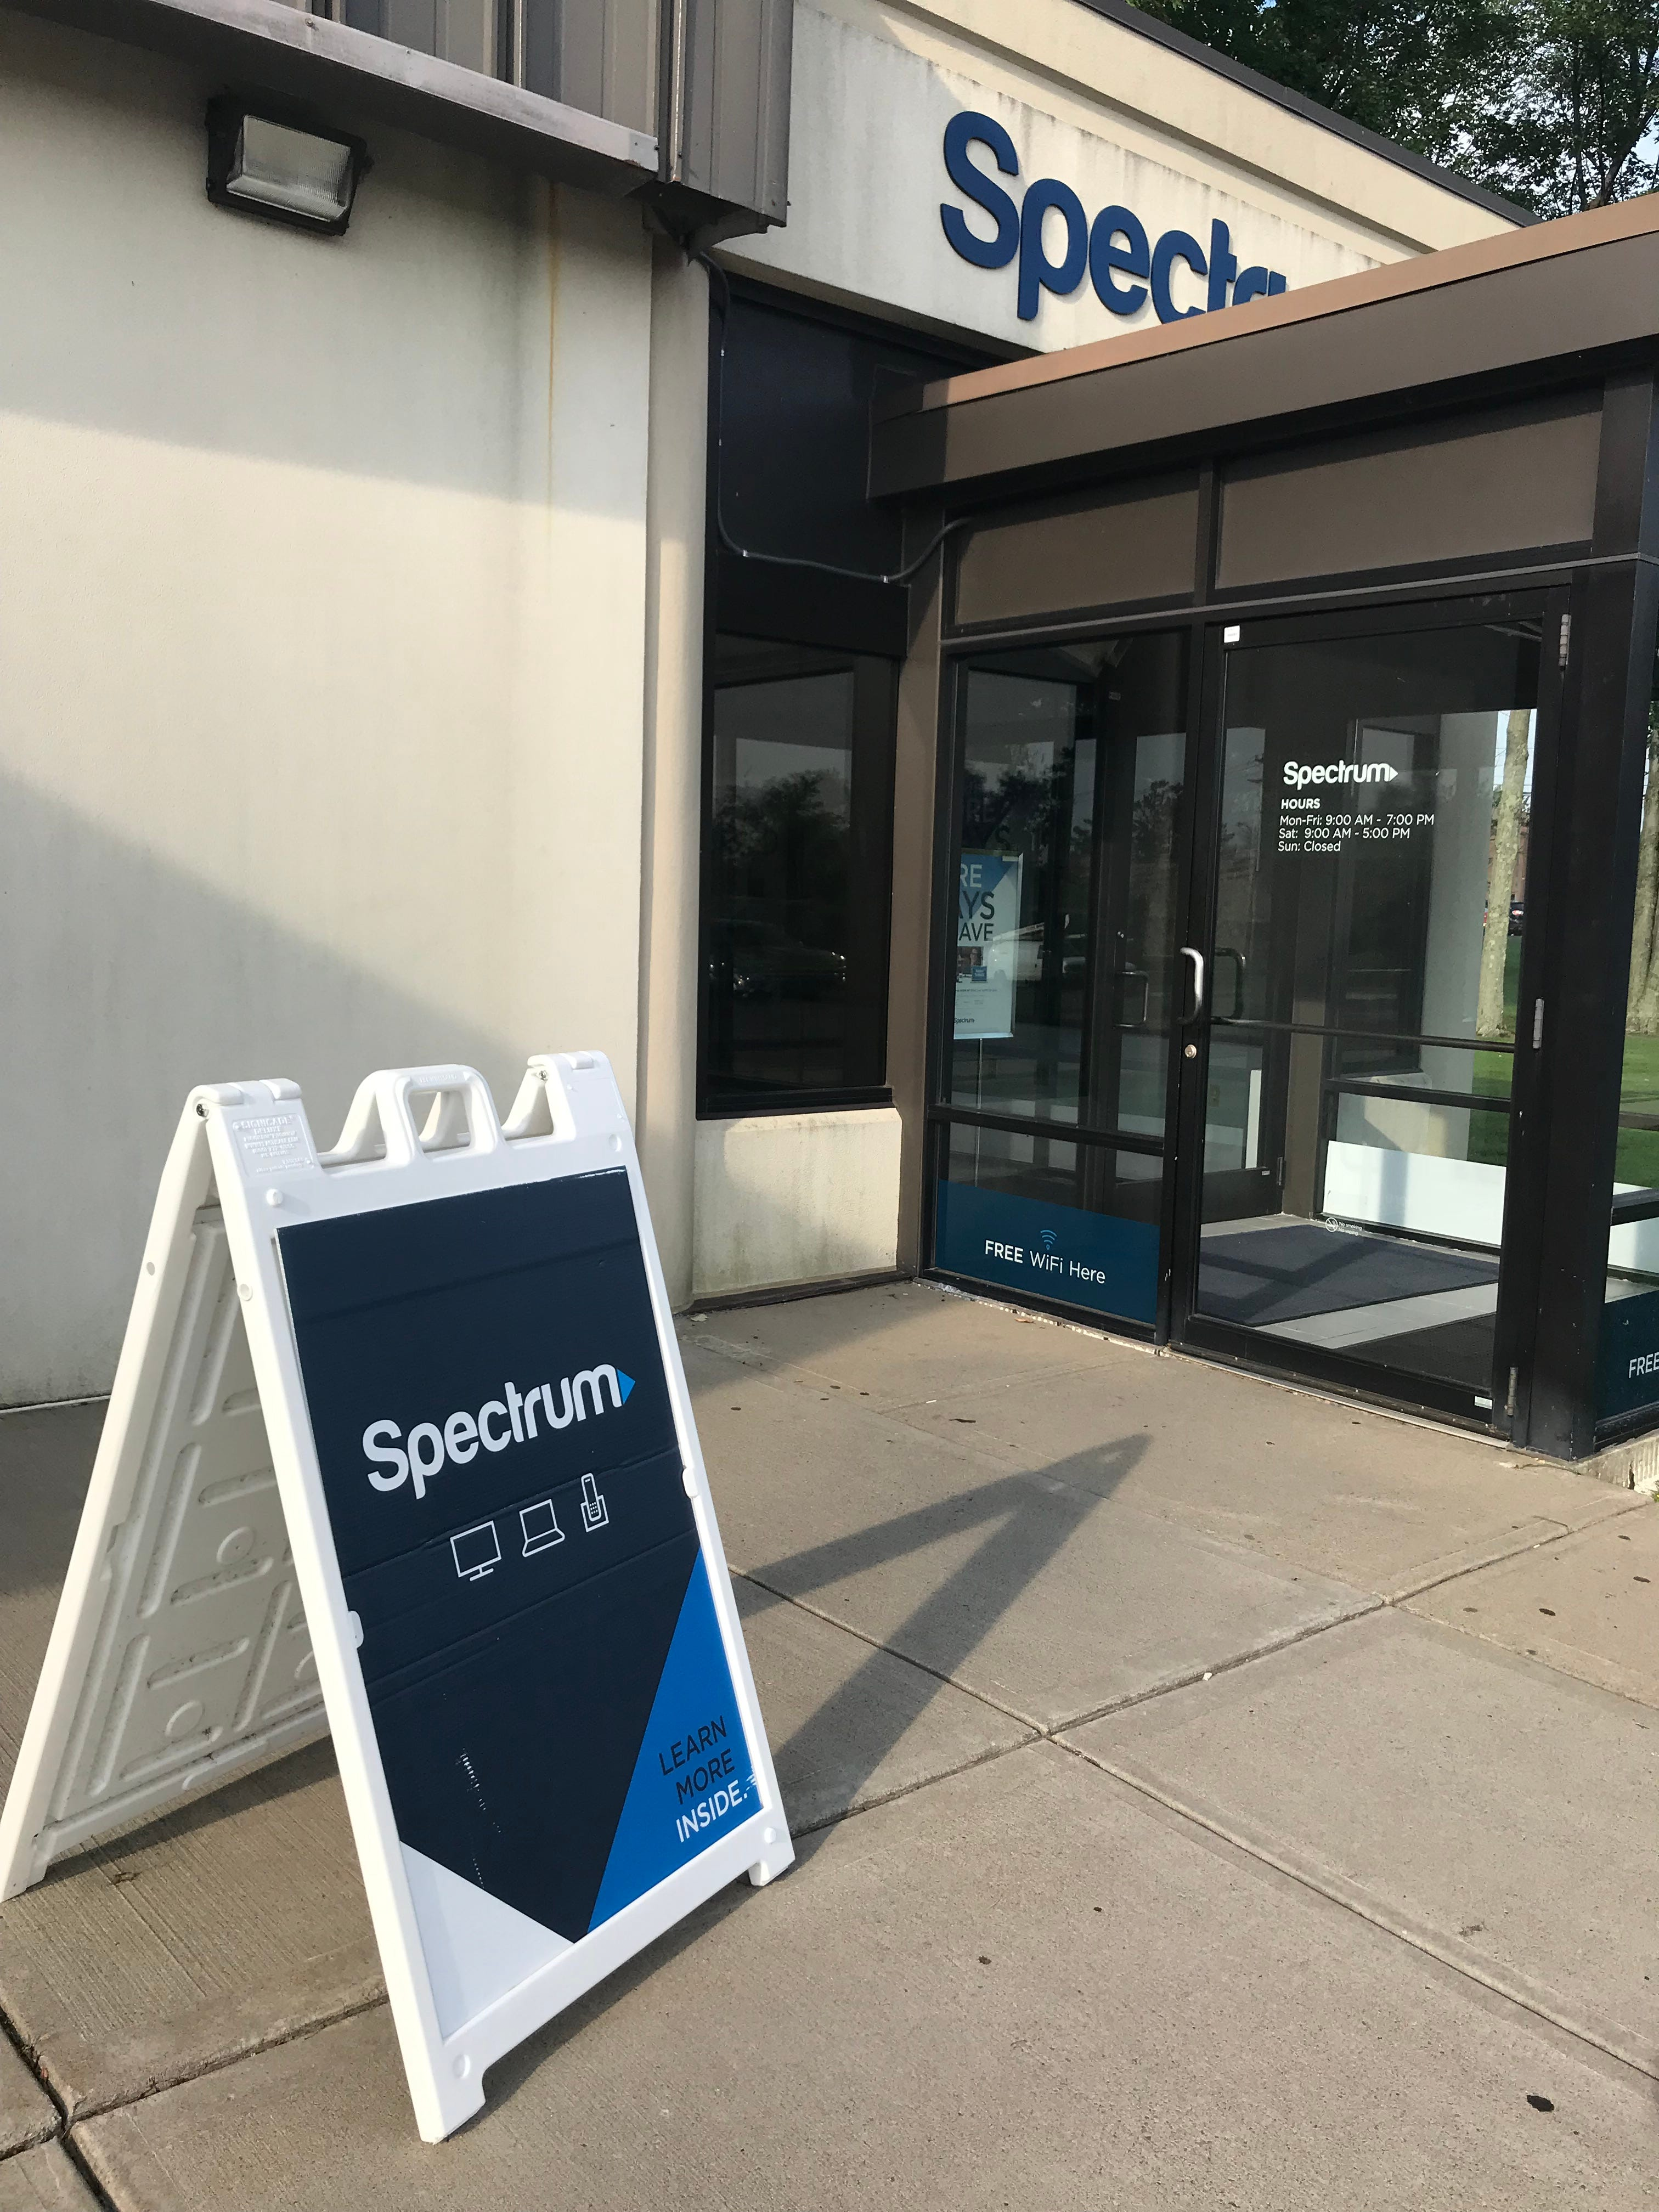 Spectrum Cable Nyc Pay Bill: Charter/Spectrum to pay record $174.2M for defrauding NY customersrh:pressconnects.com,Design